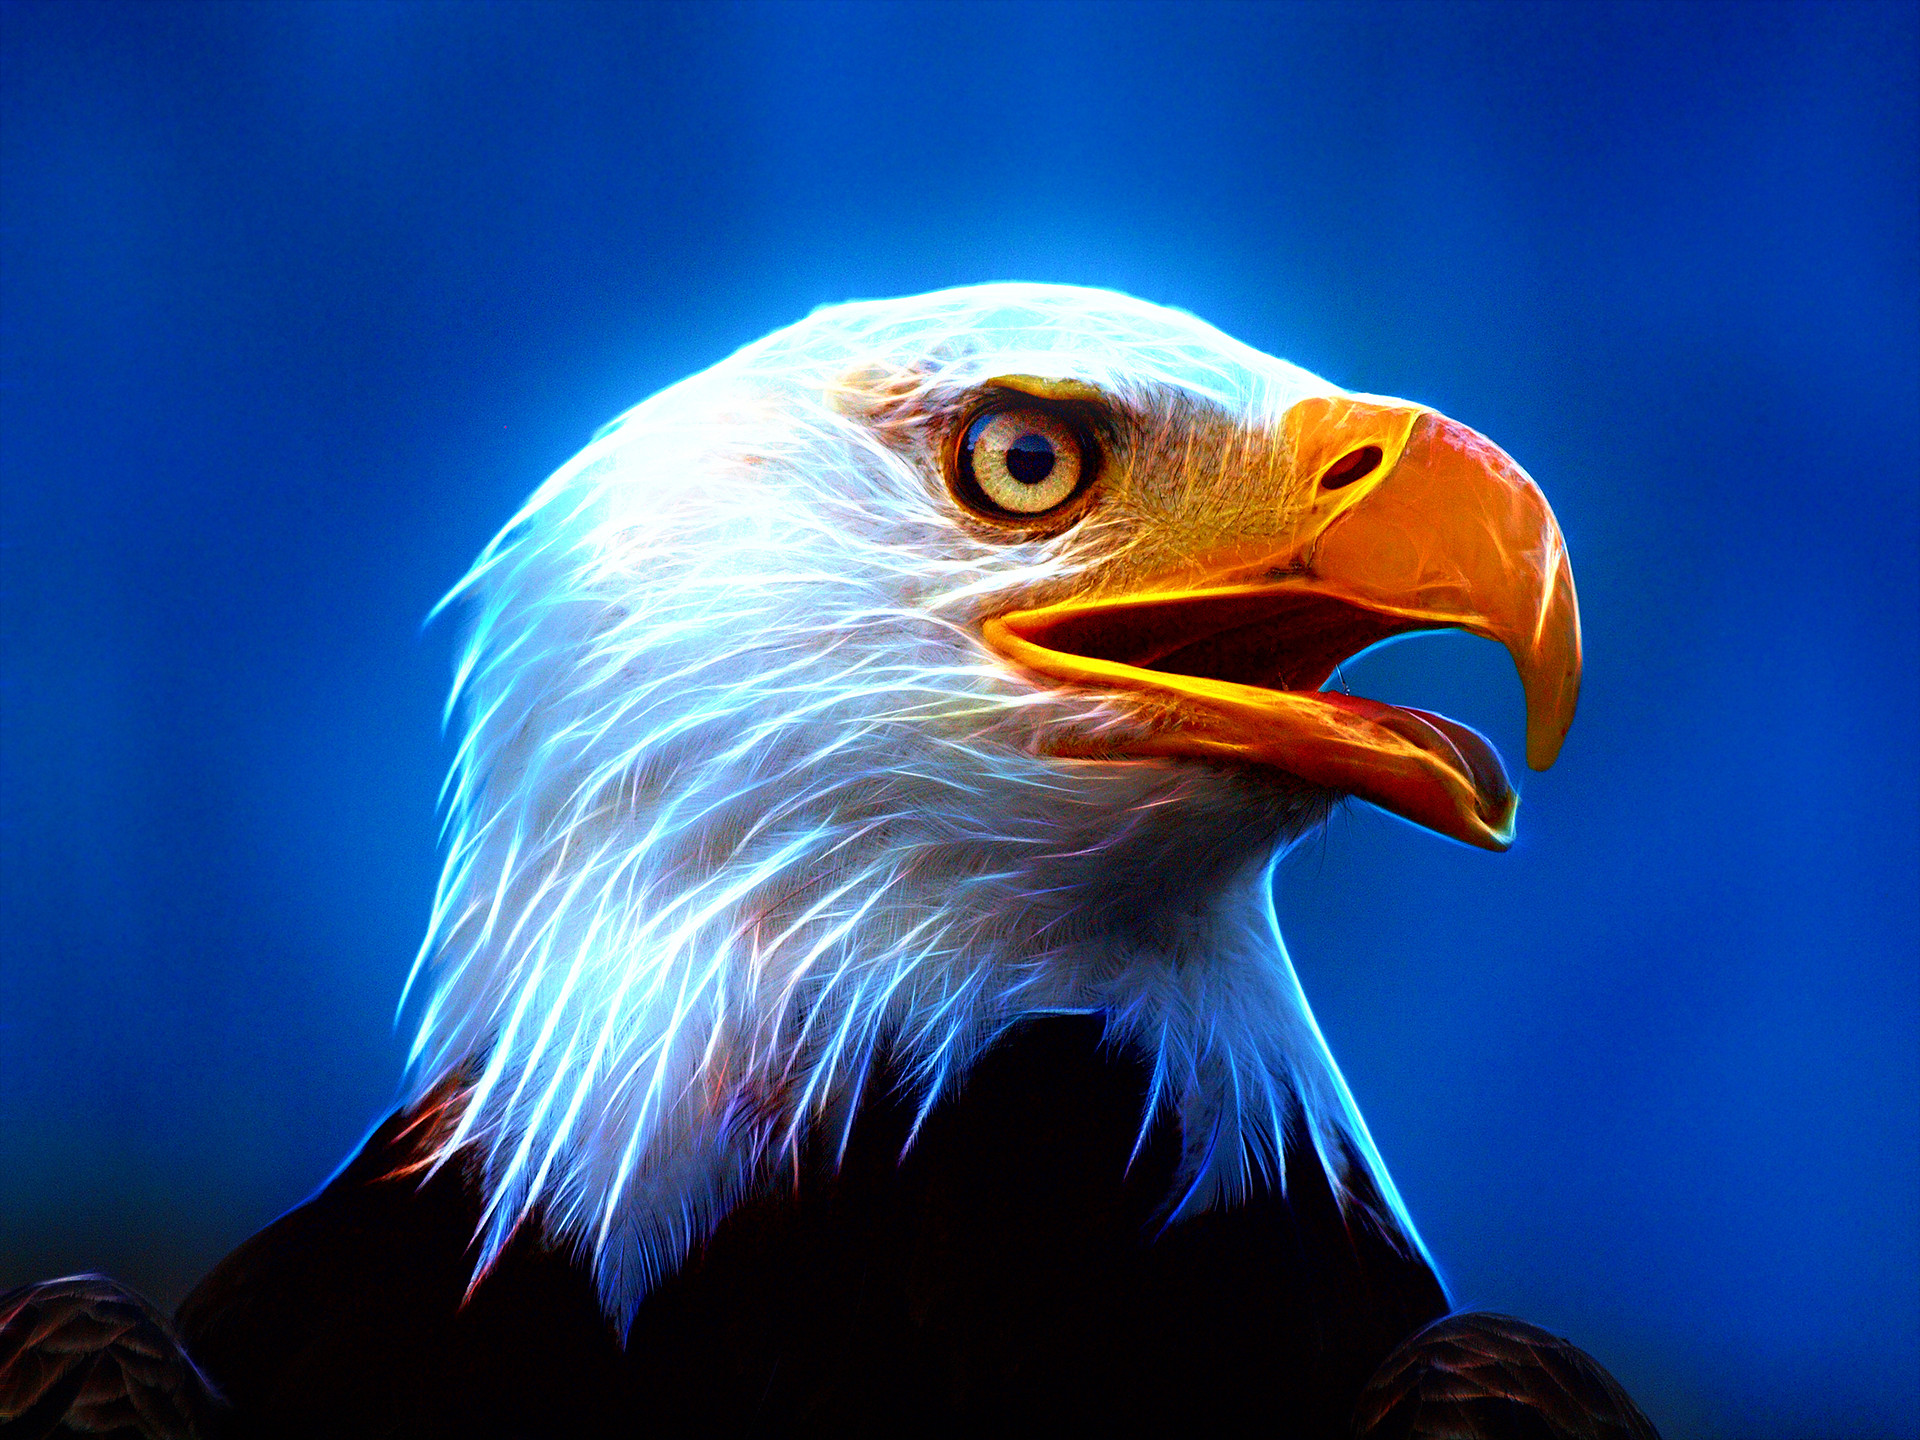 1920x1440 Eagle Wallpapers, Download Eagle HD Wallpapers for Free, GuoGuiyan  1920×1440 Eagle Wallpapers